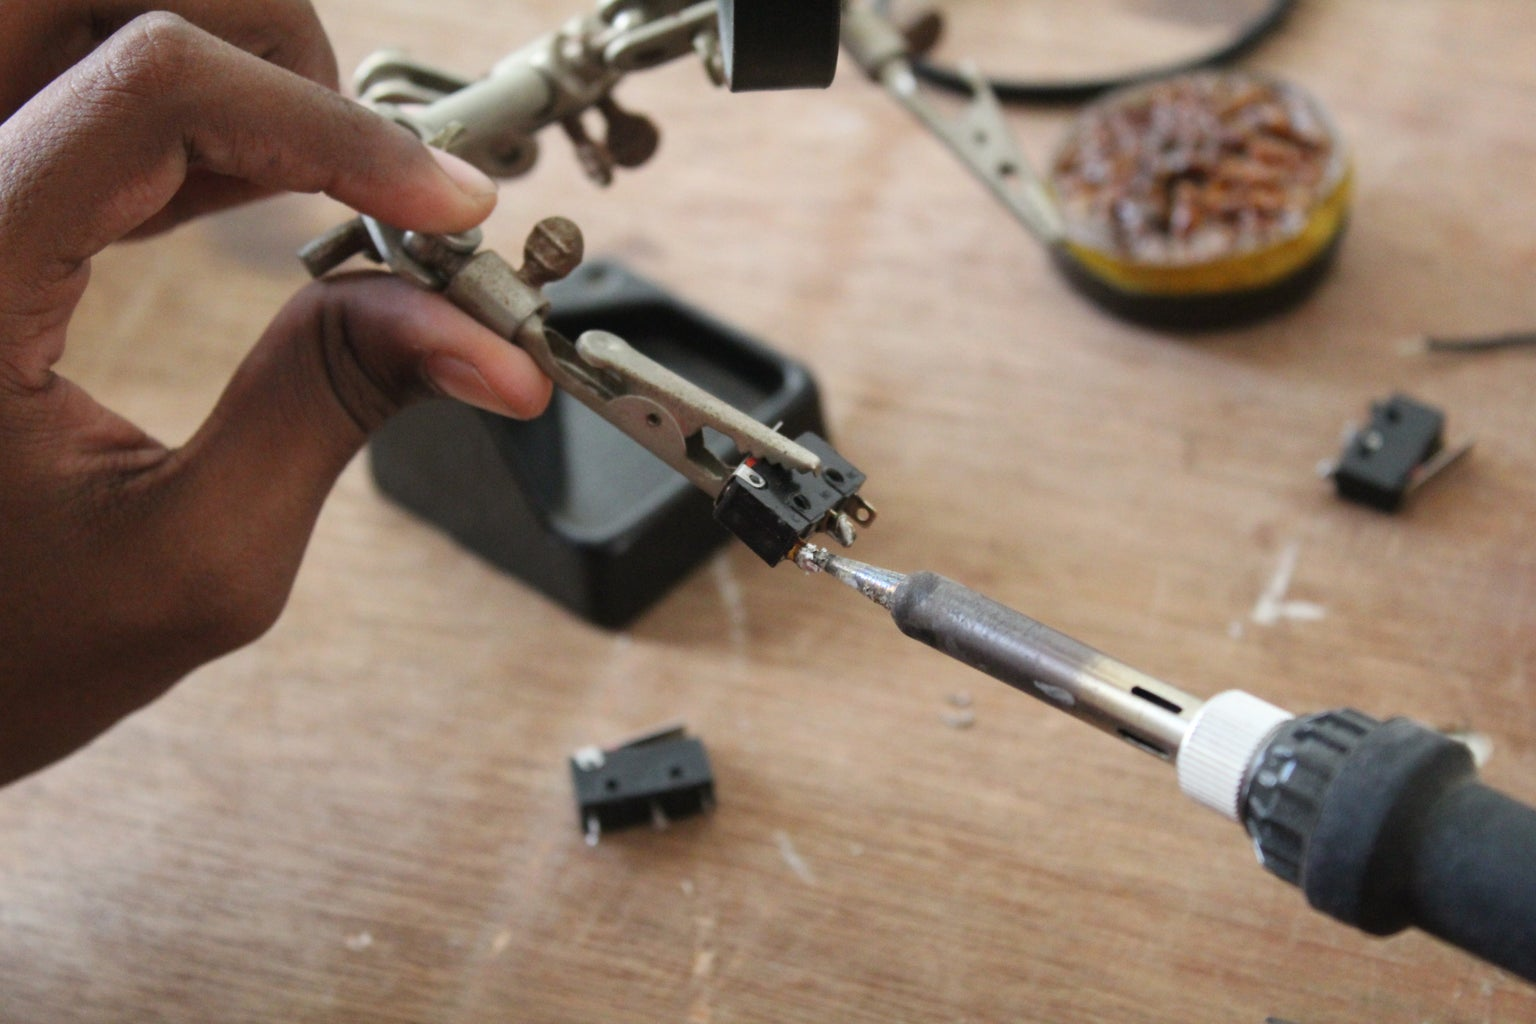 Attaching the Limit Switches